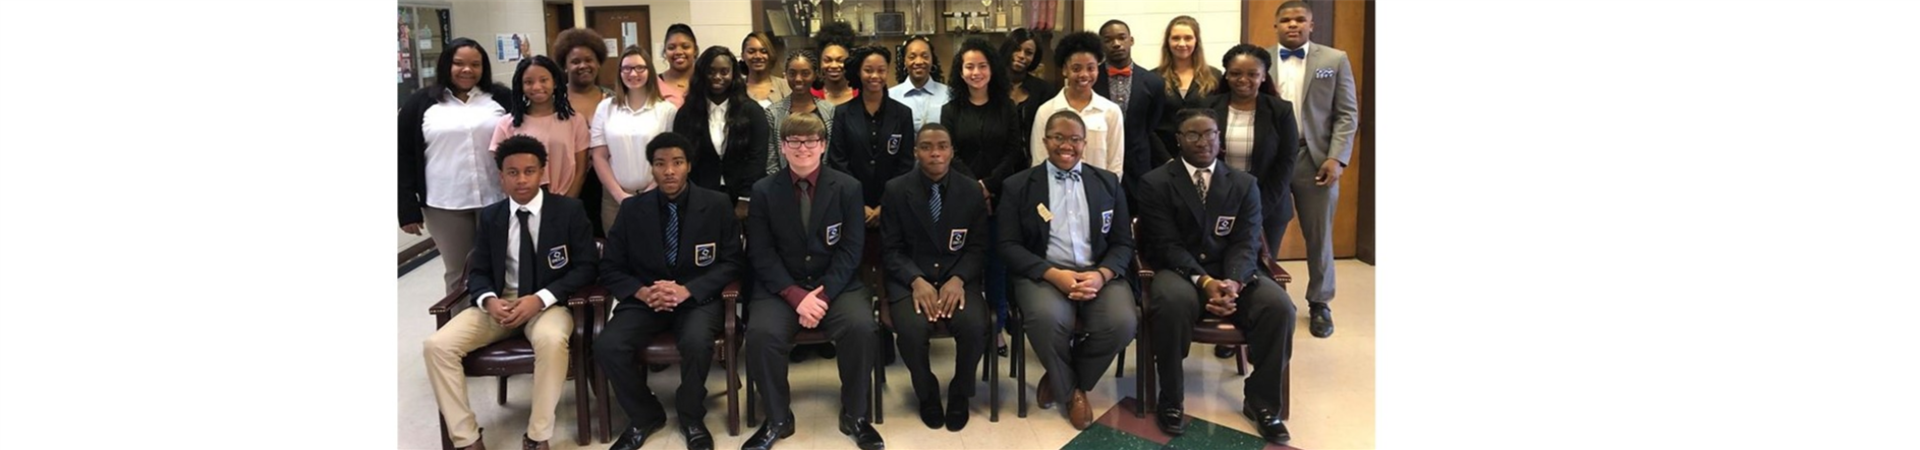 Covington County School CTE DECA Organization 2019-2020